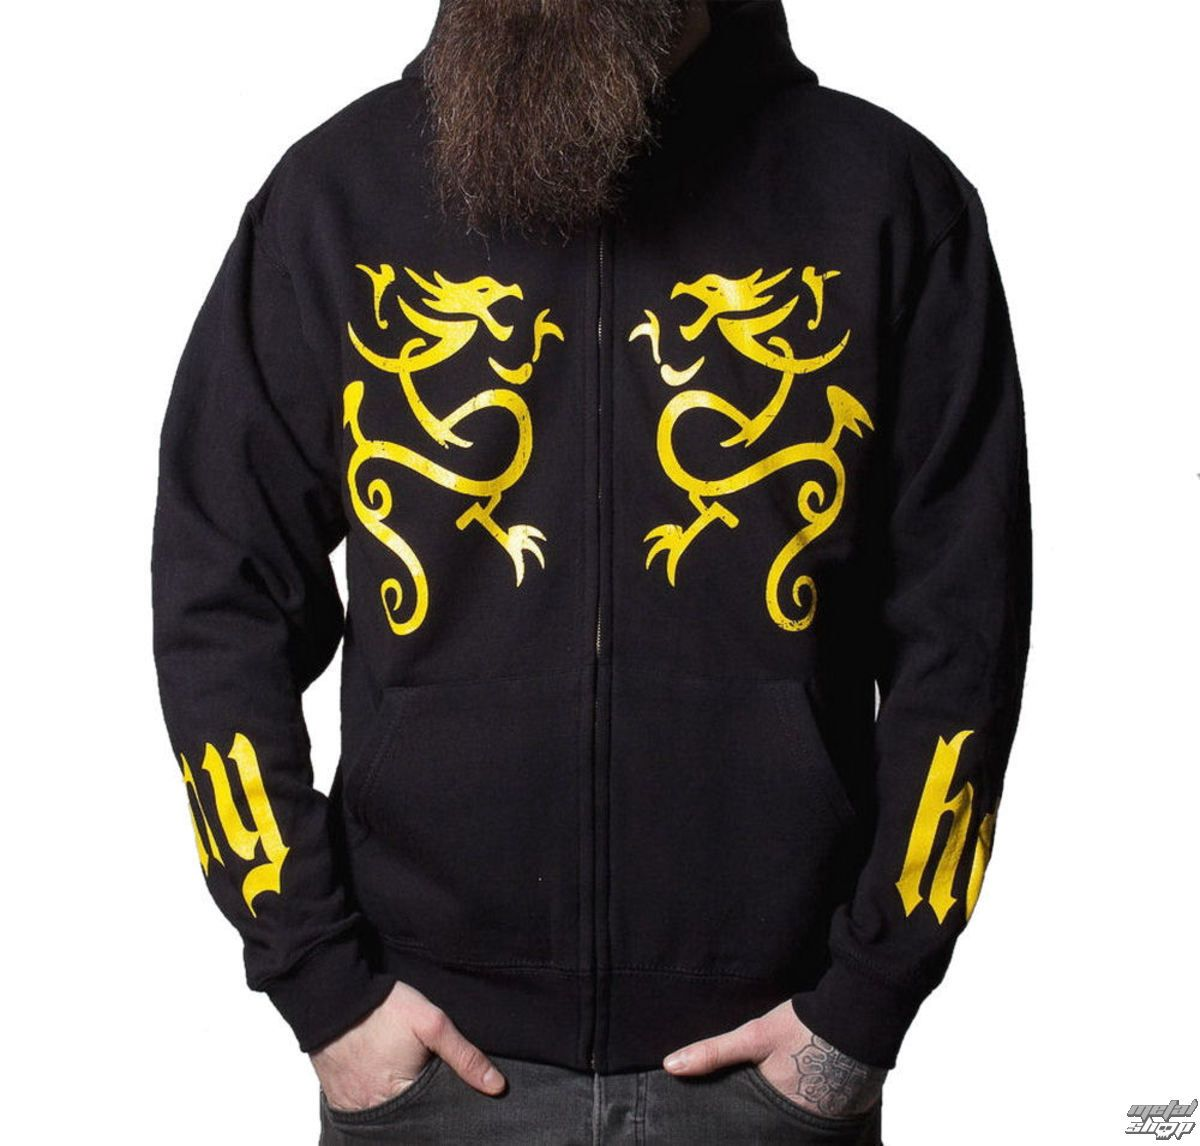 METALSHOP metal and punk t shirts, hoodies and shoes